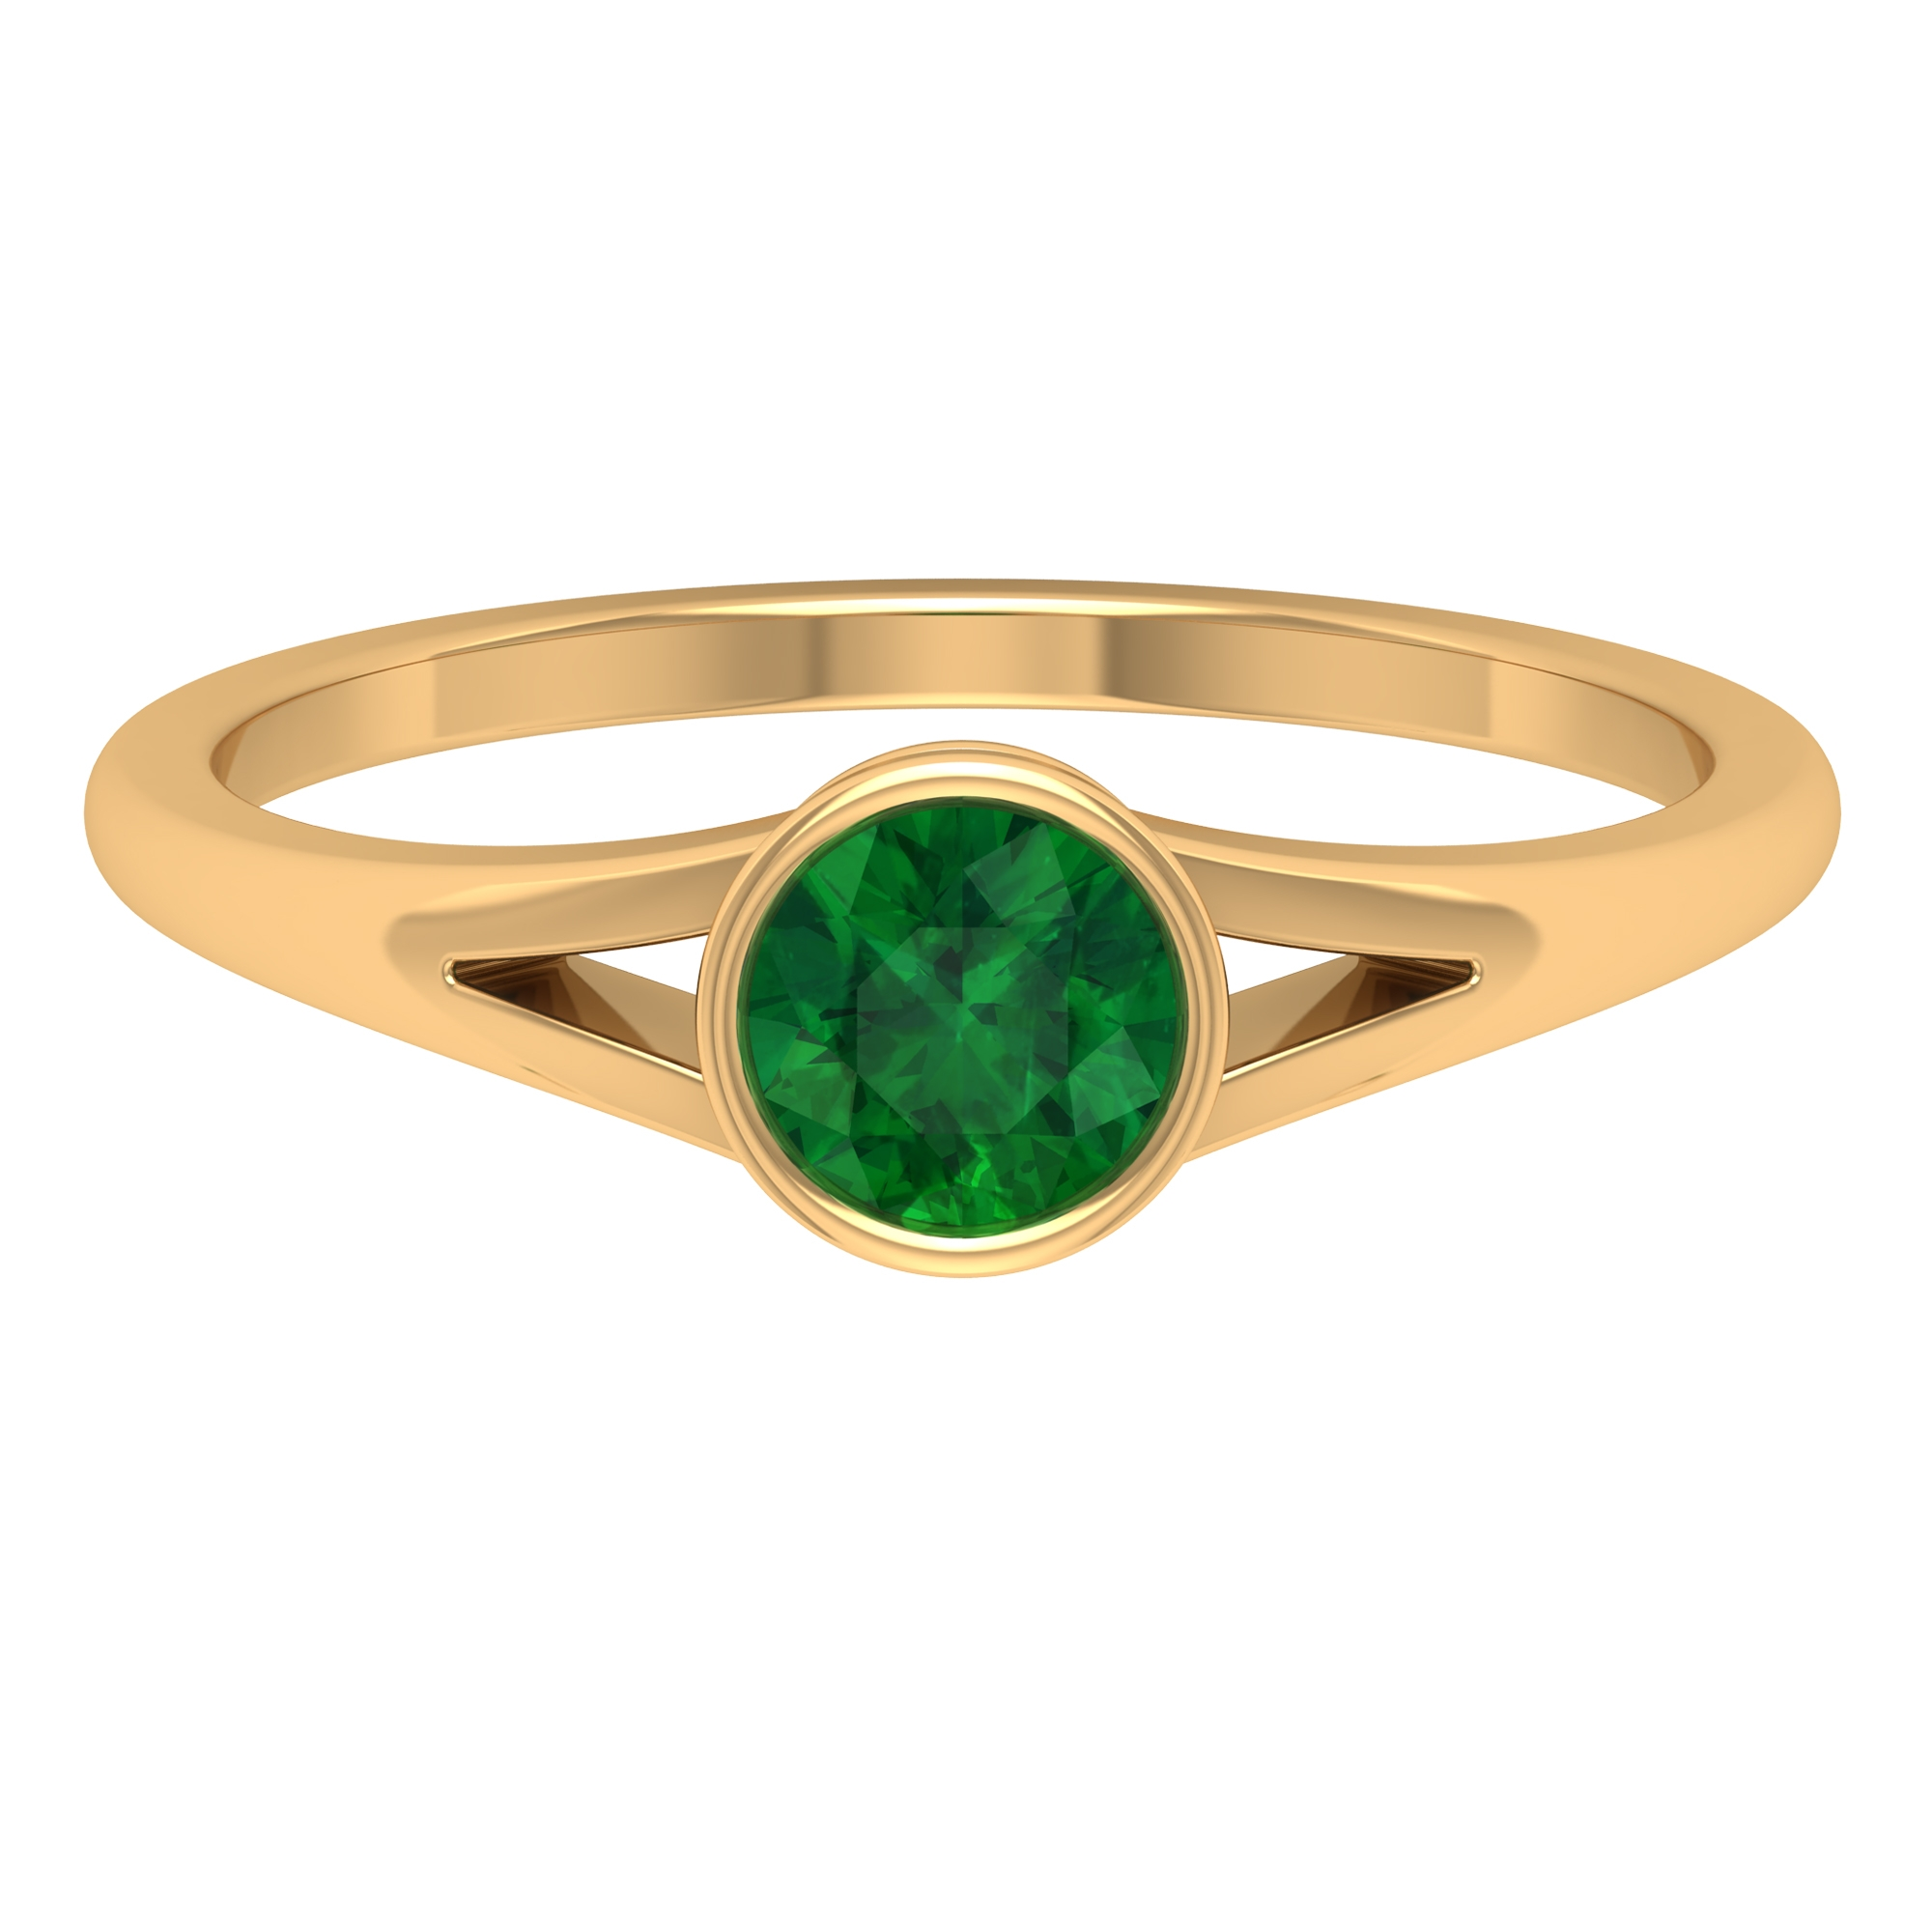 5 MM Round Cut Emerald Solitaire Ring in Bezel Setting with Split Shank